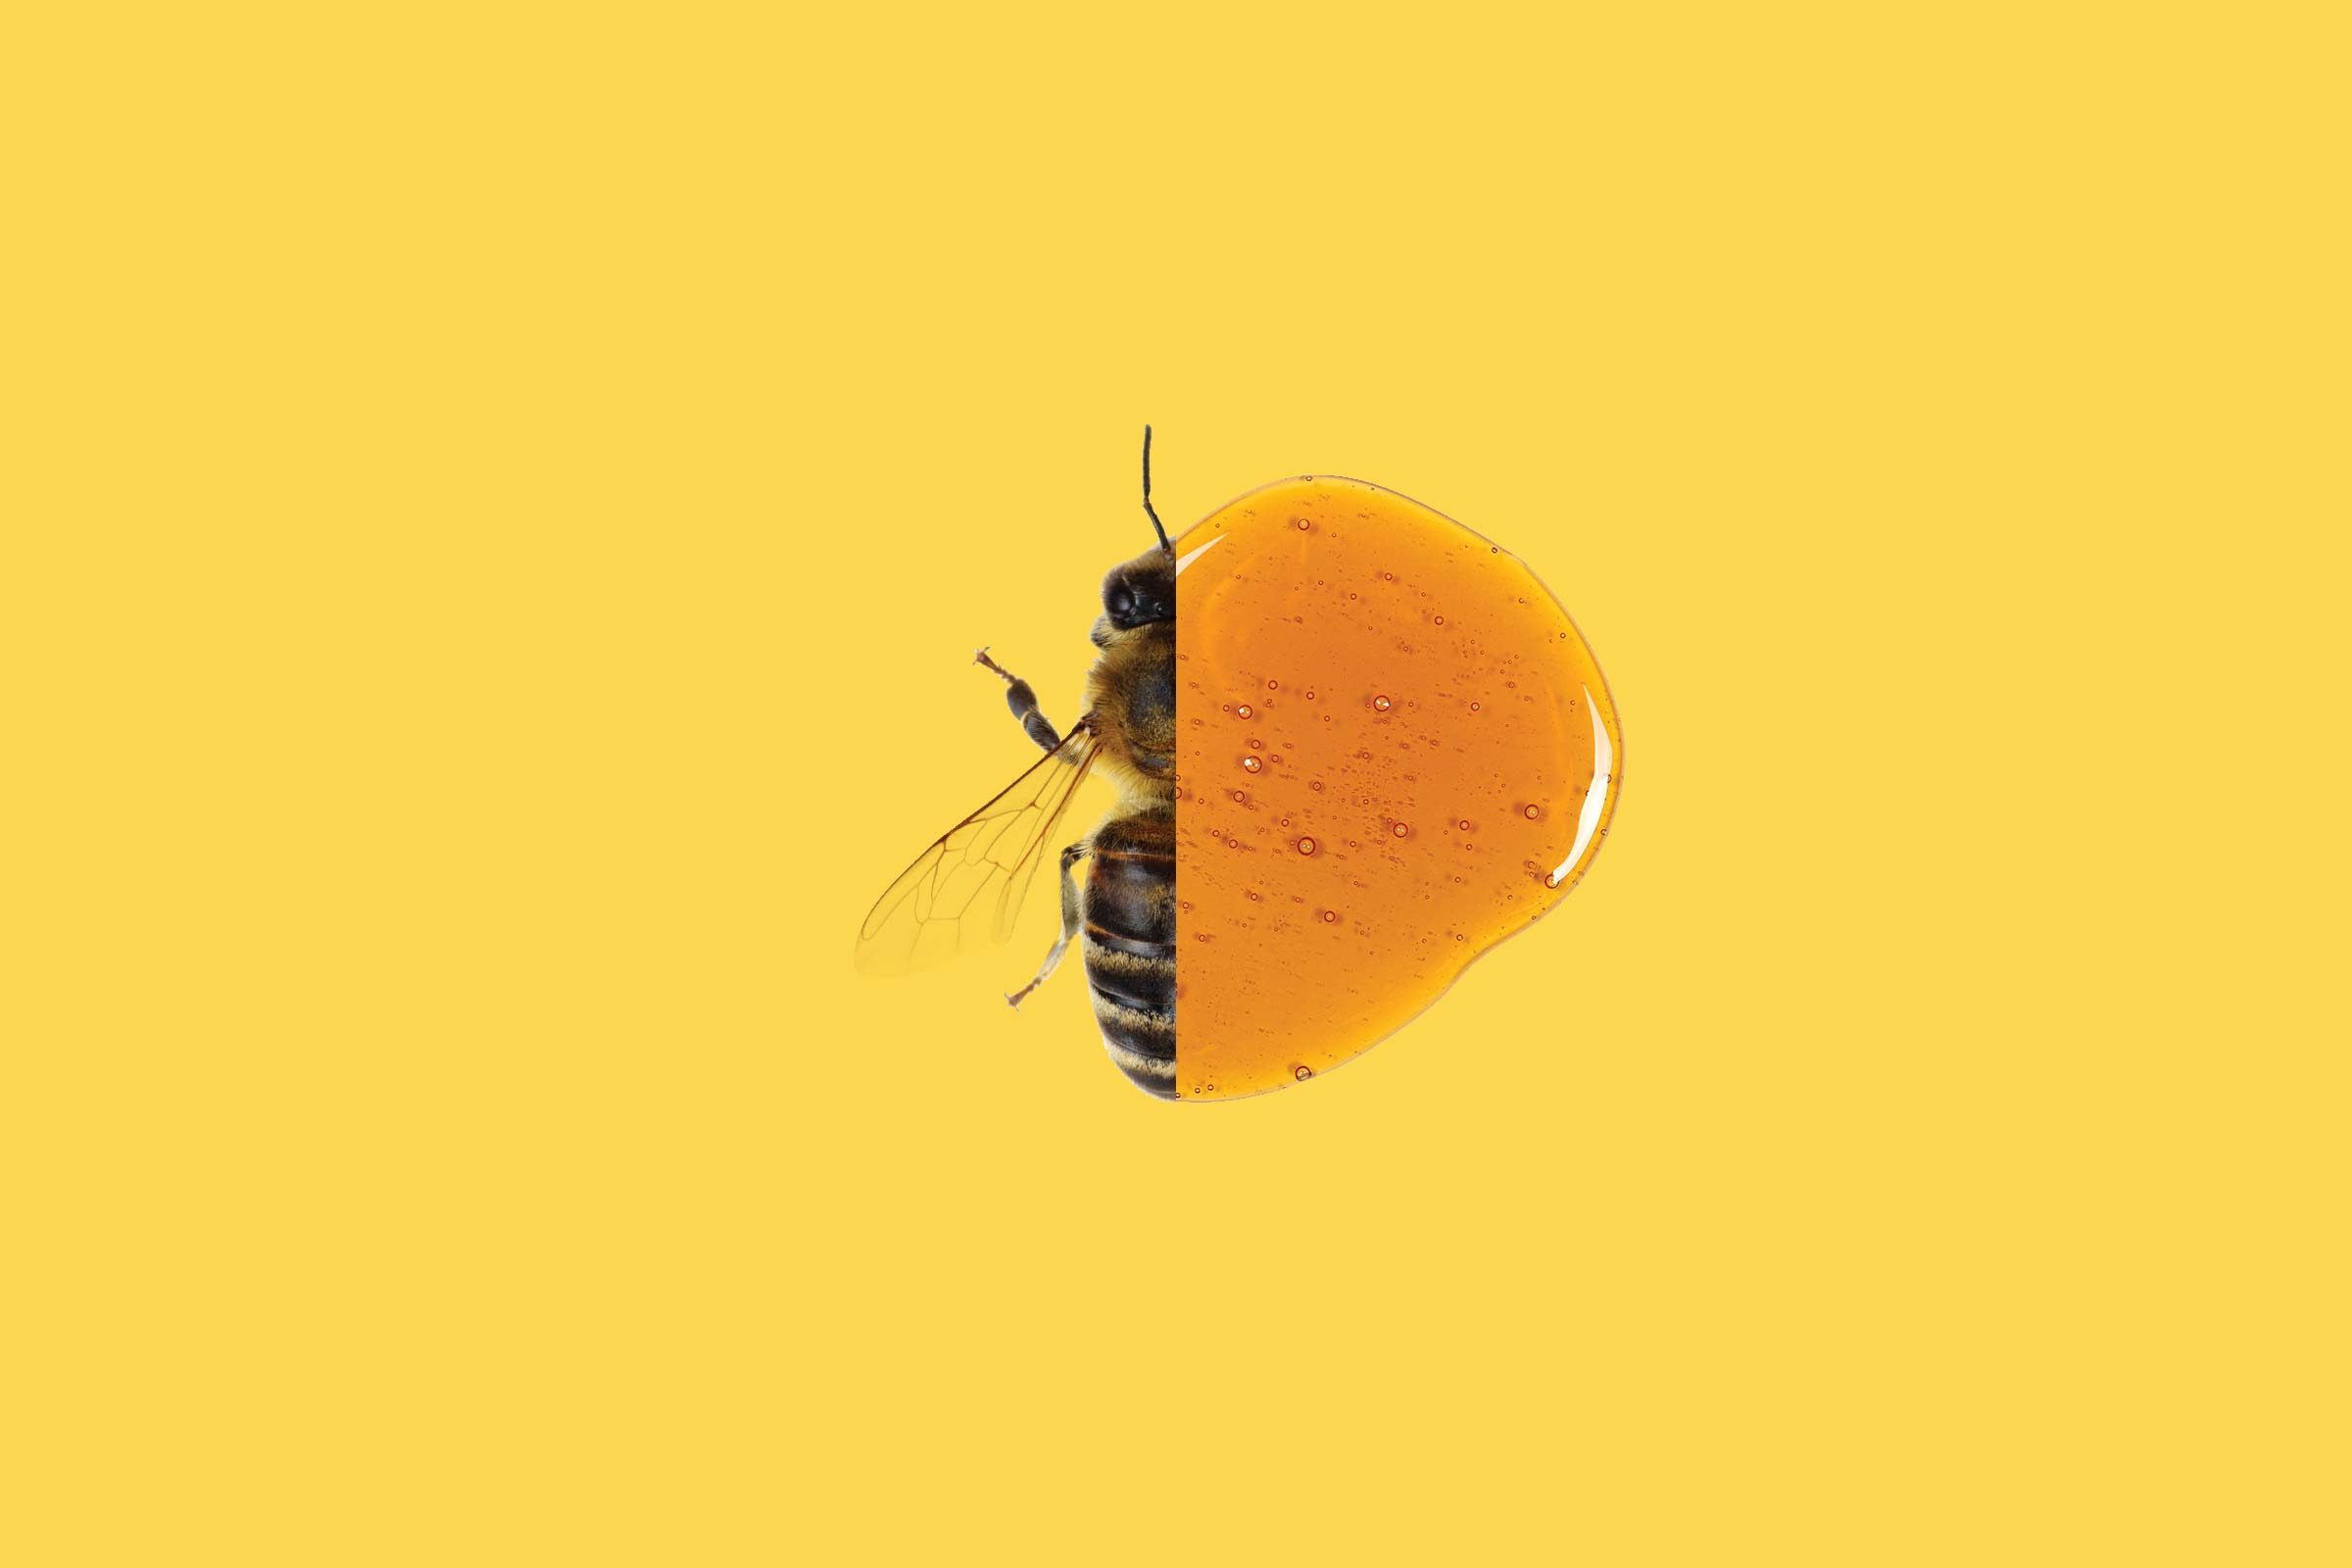 bees can make colored honey